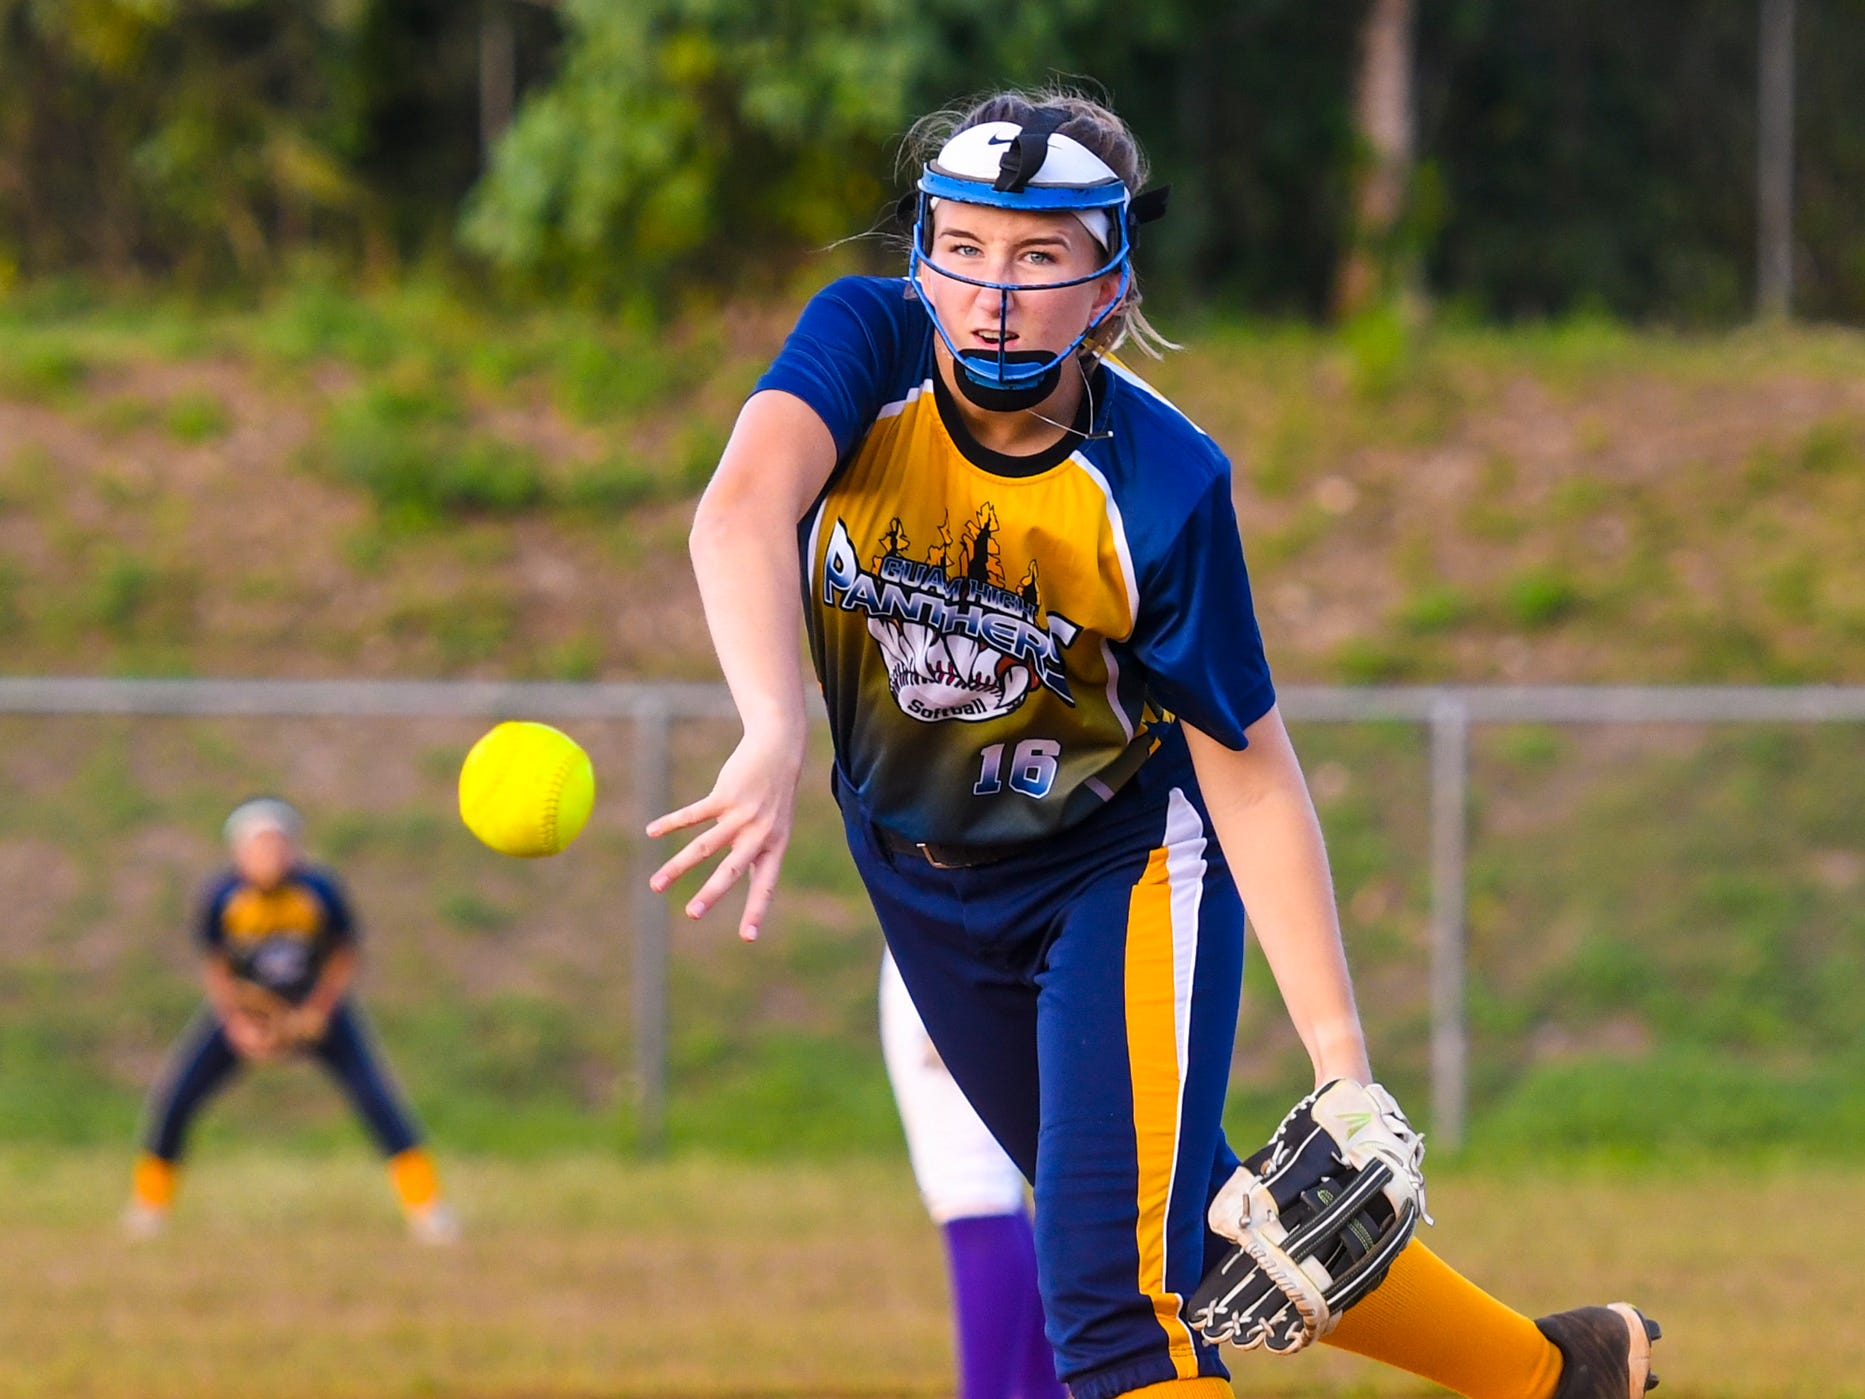 Guam High School Panthers' pitcher Alexis Blyth tosses one over the plate during an IIAAG girls softball game with the George Washington High School Geckos on the diamond at Okkodo High School in Dededo on Thursday, March 7, 2019.